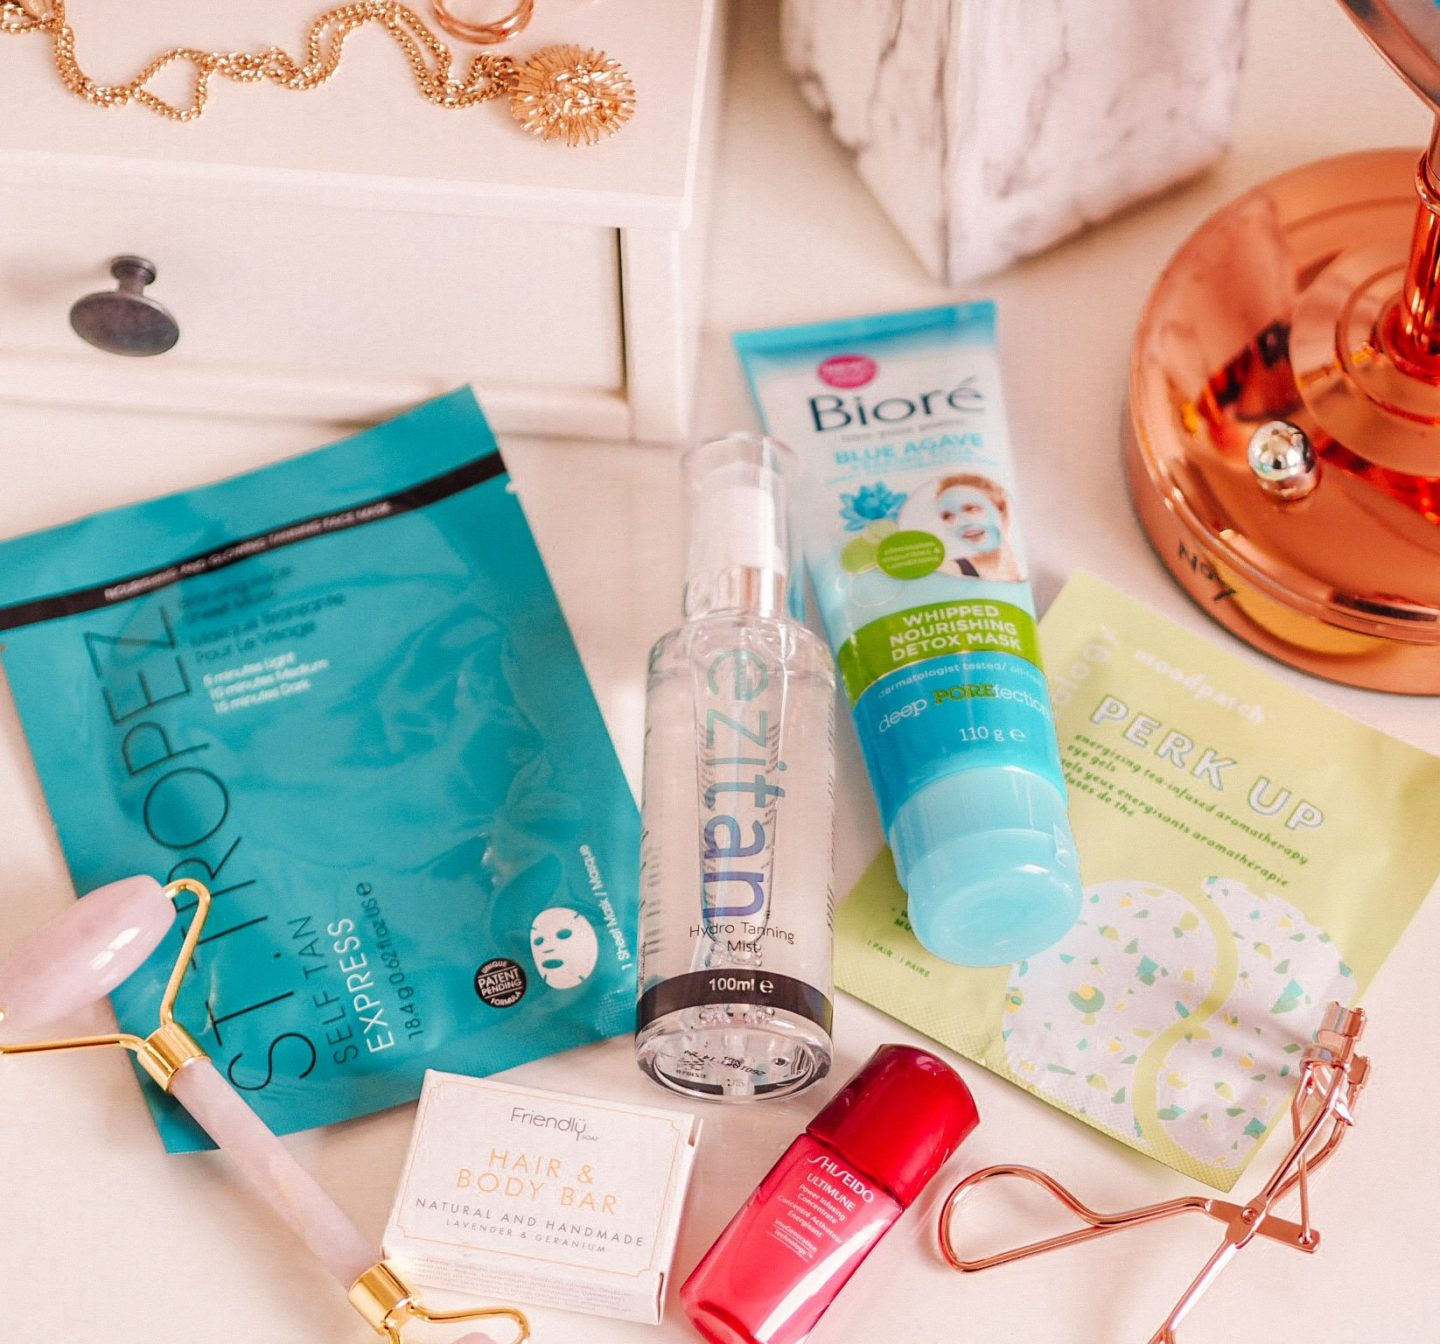 Latest in Beauty Box Beauty Headliners July 19